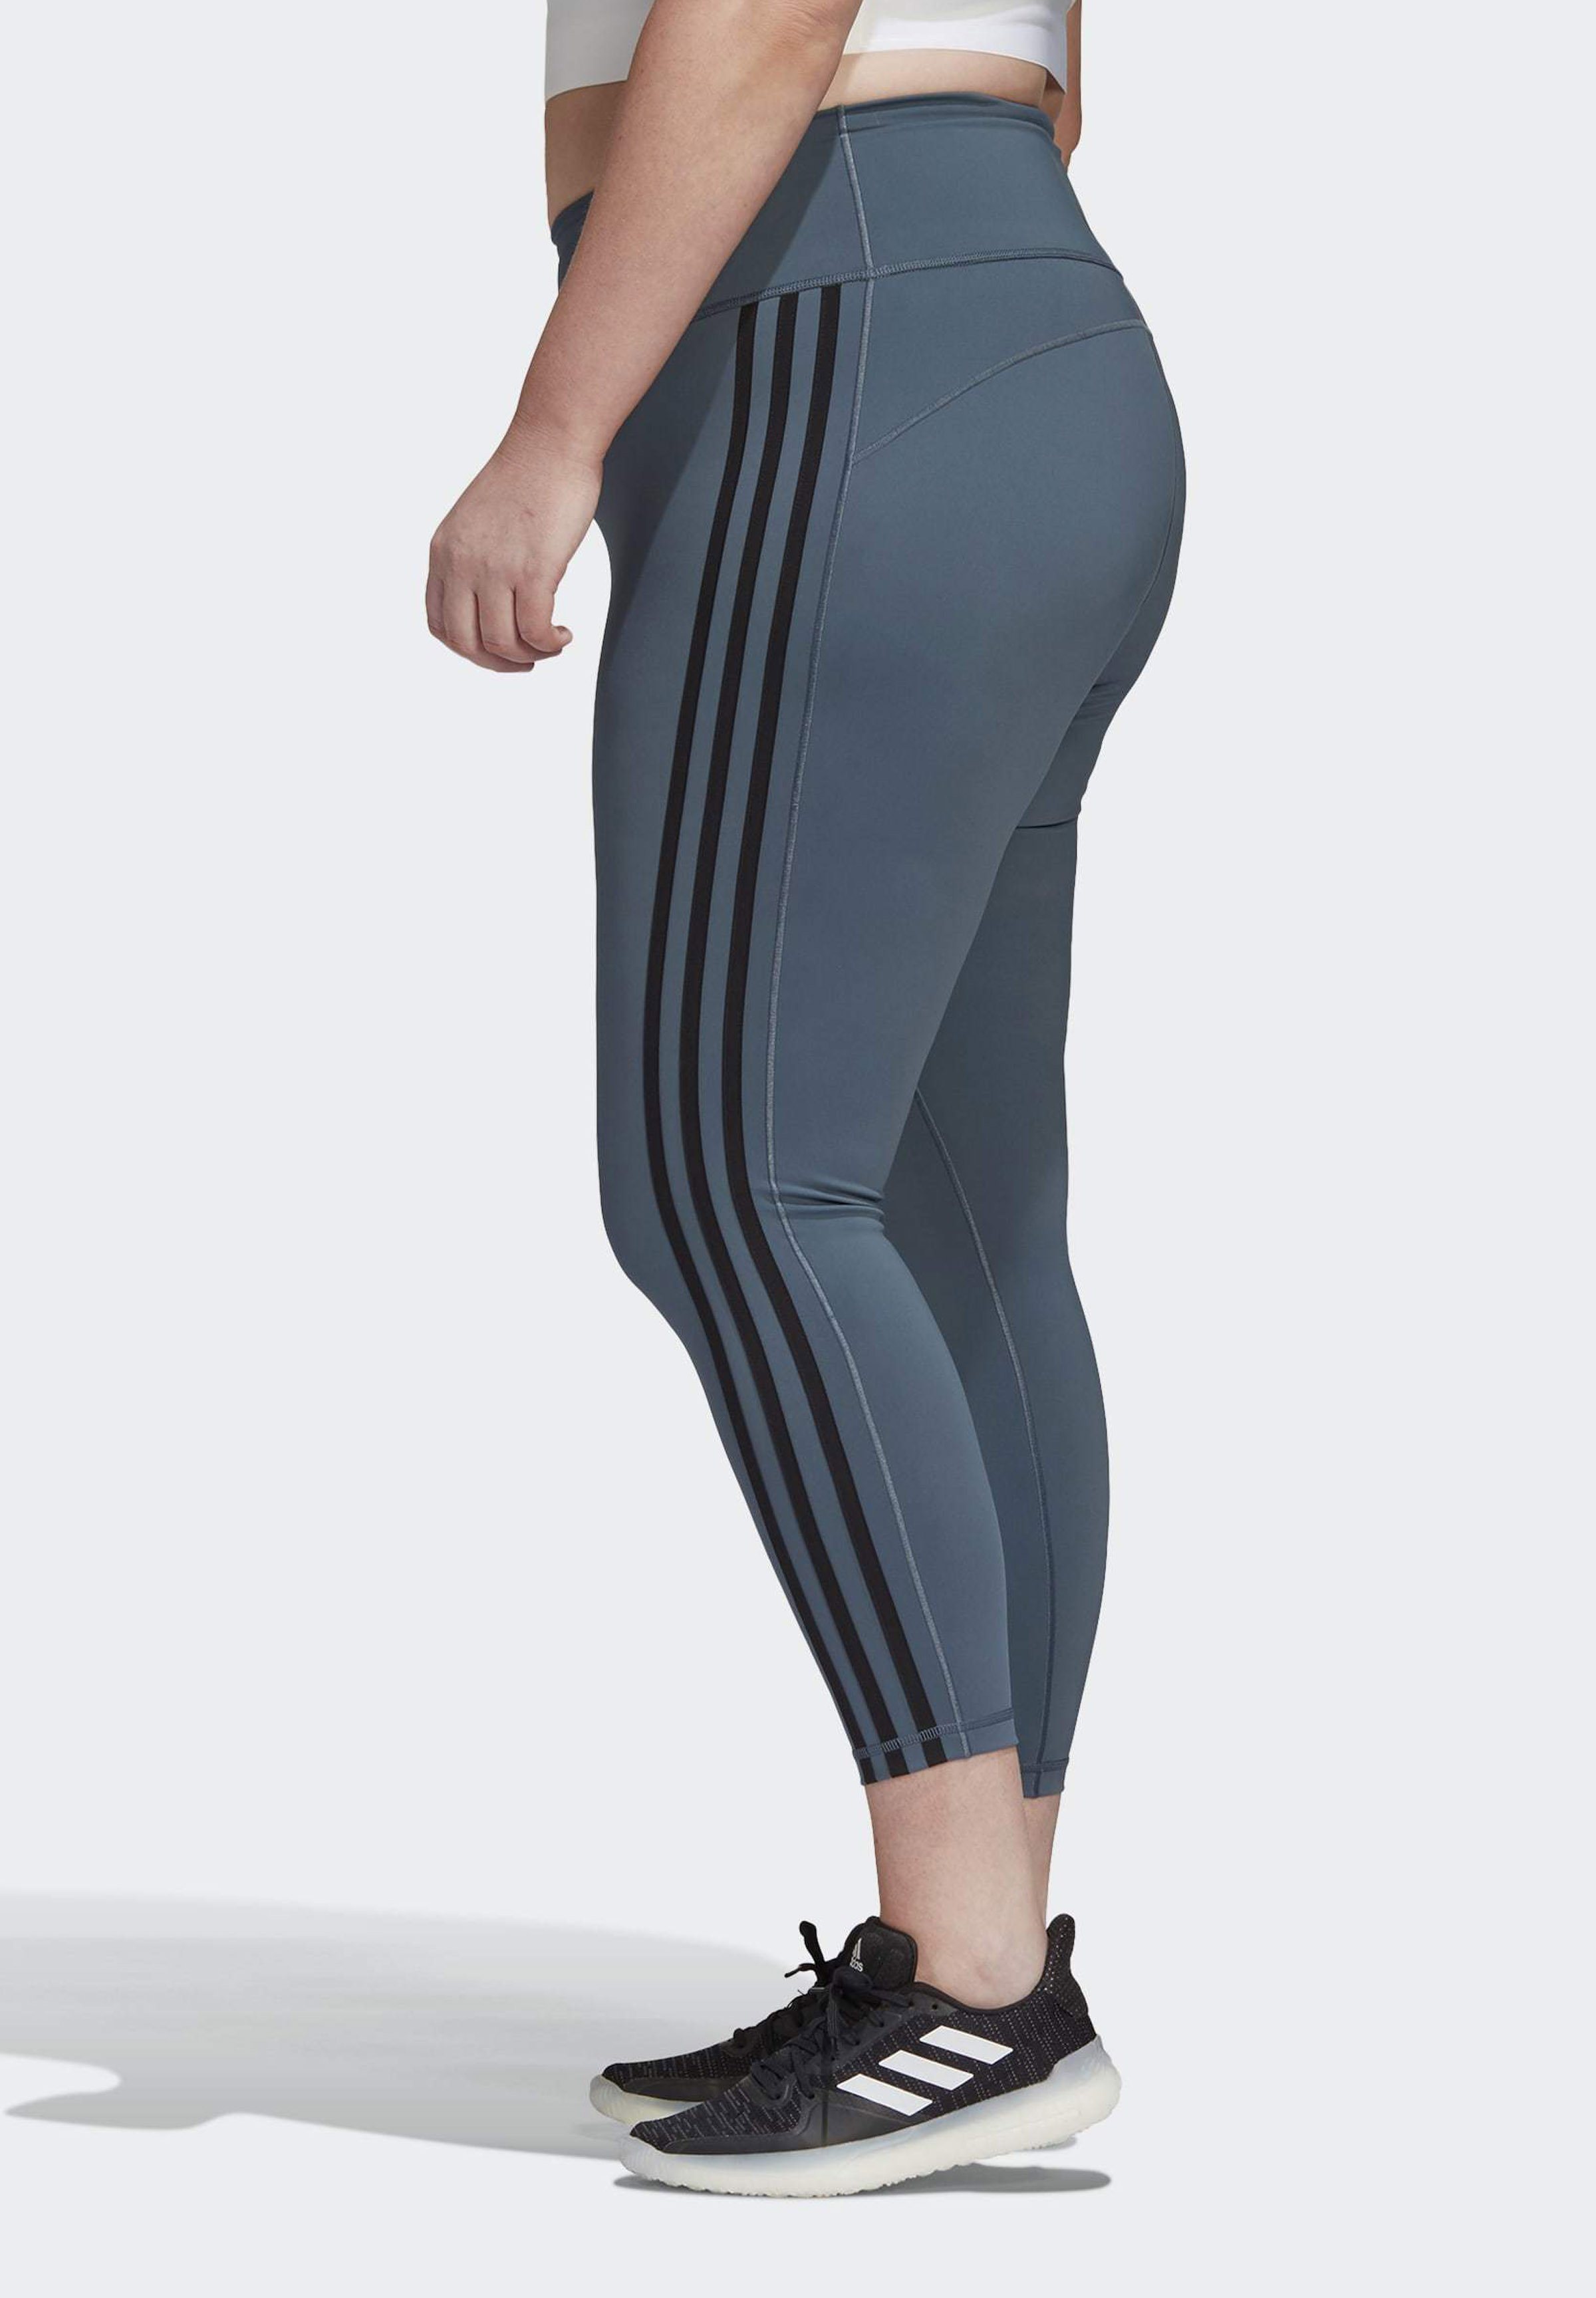 Sale Women's Clothing adidas Performance BELIEVE THIS 3-STRIPES 7/8 LEGGINGS (PLUS SIZE) Leggings green ELq8yGo2j